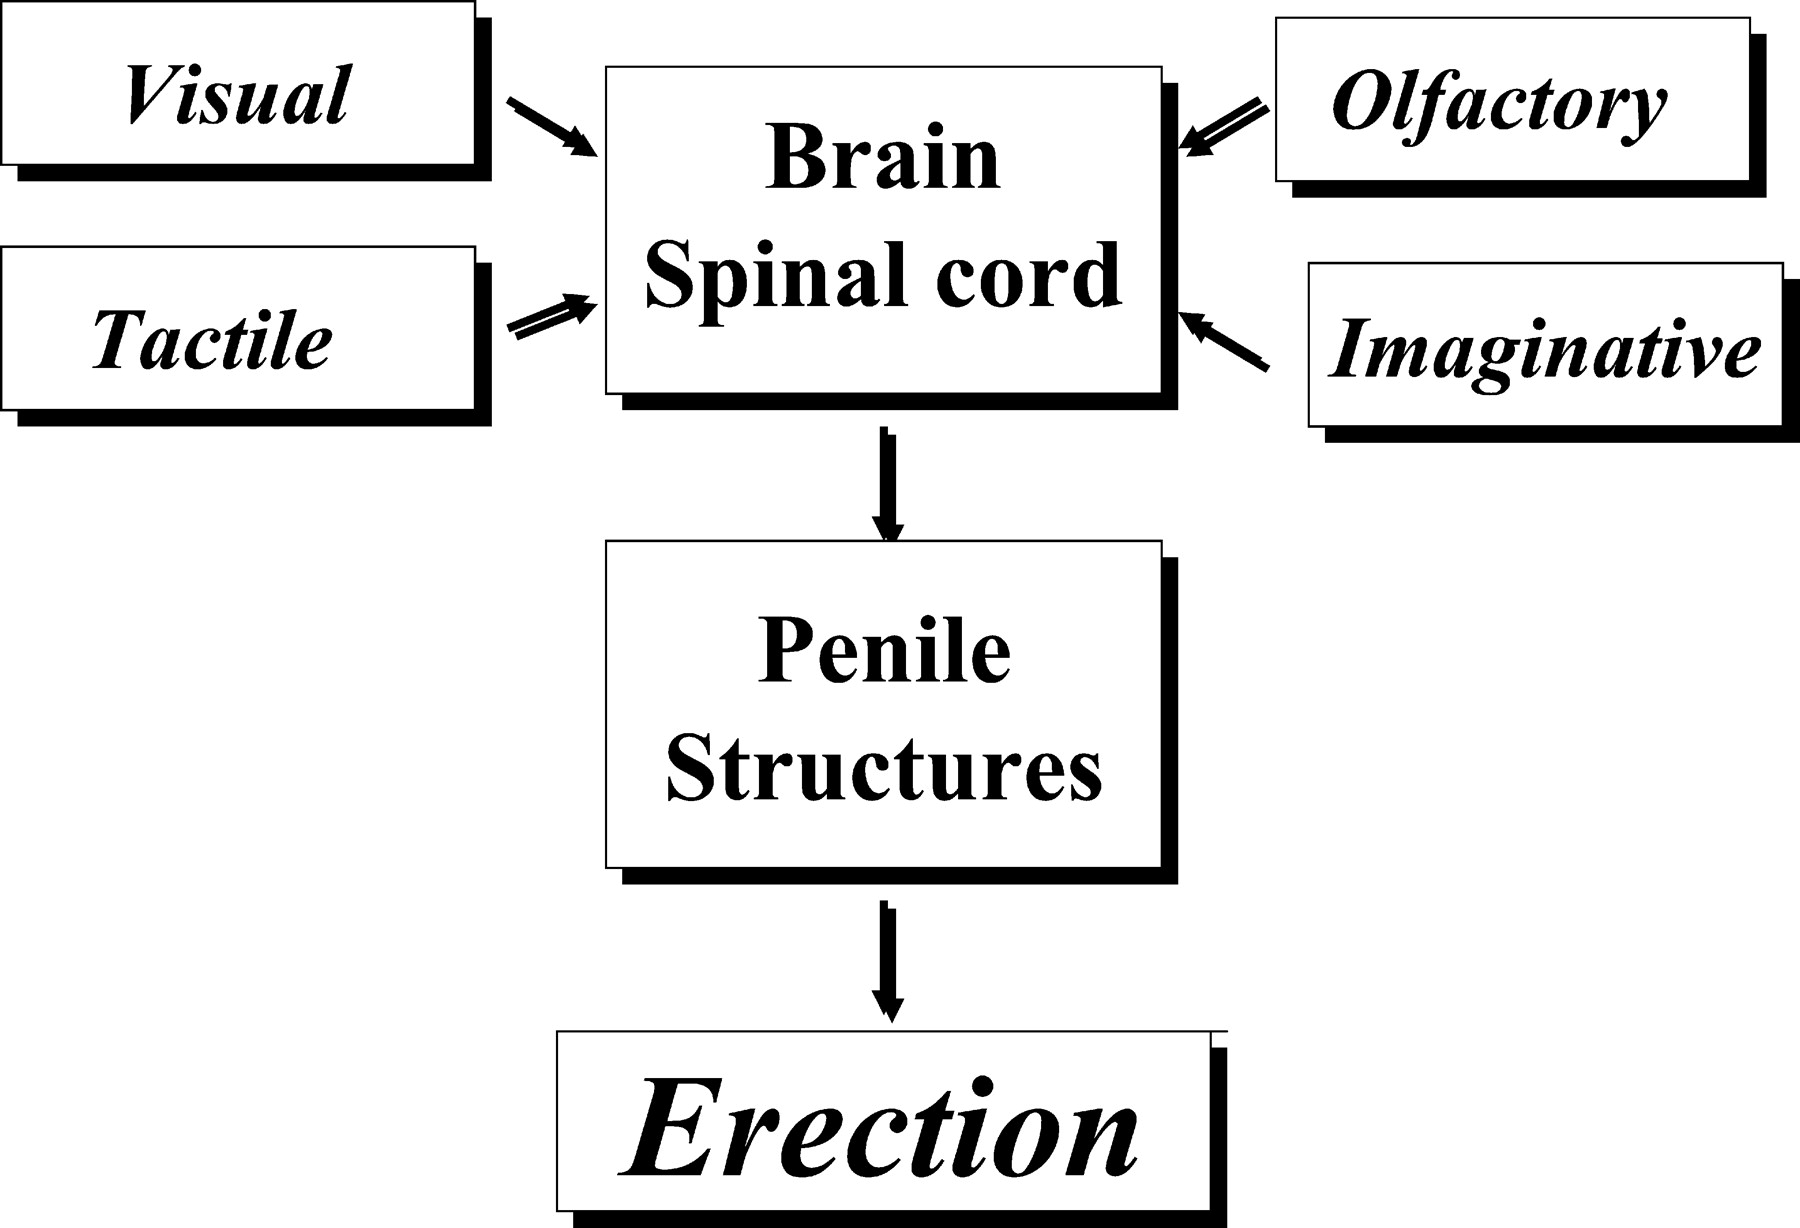 pharmacology of penile erection